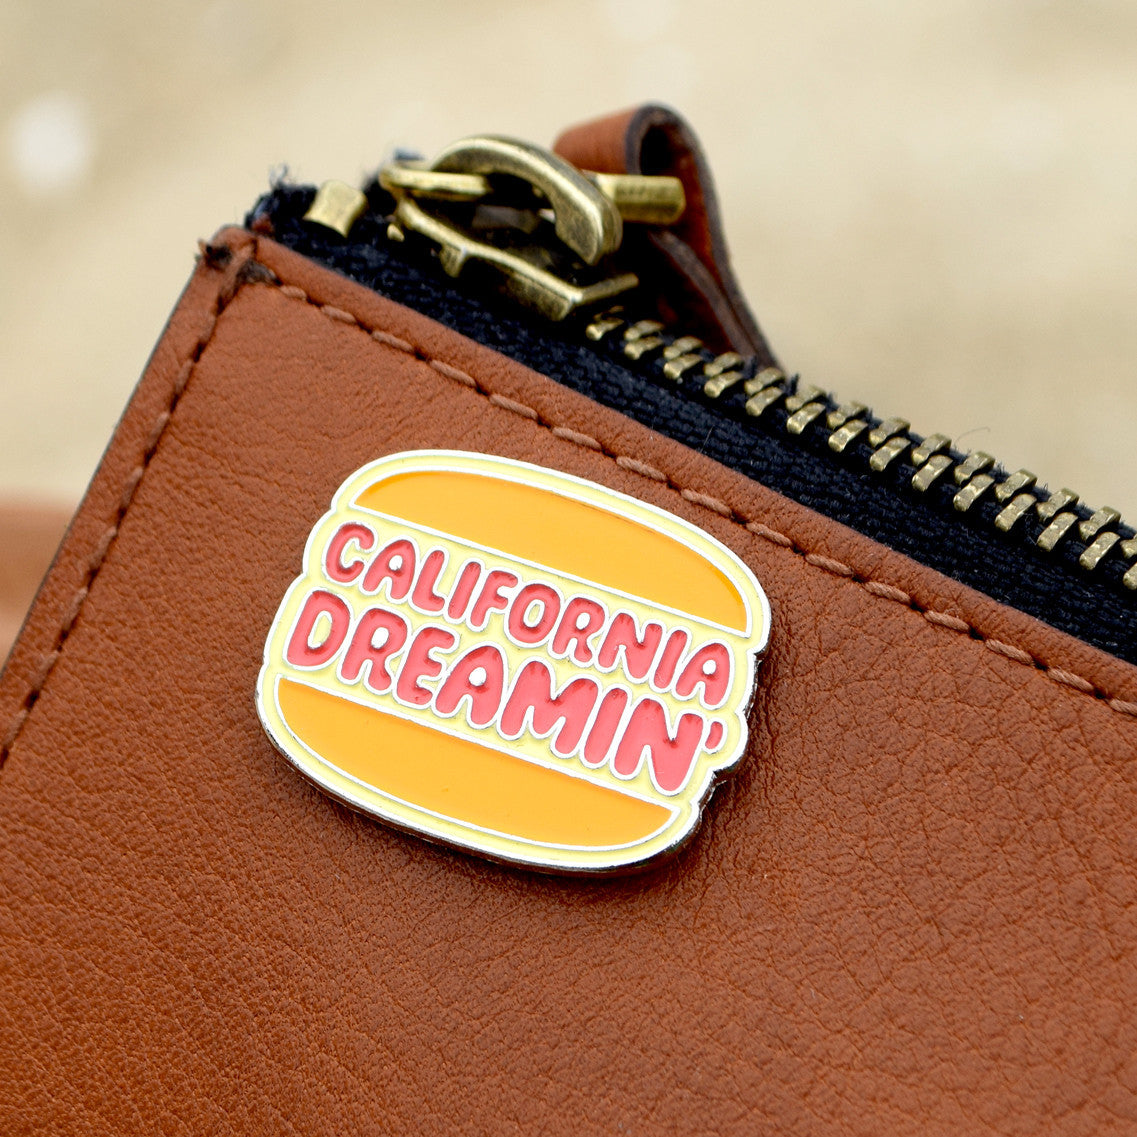 Valley Cruise Press California Dreamin' Burger Pin Badge